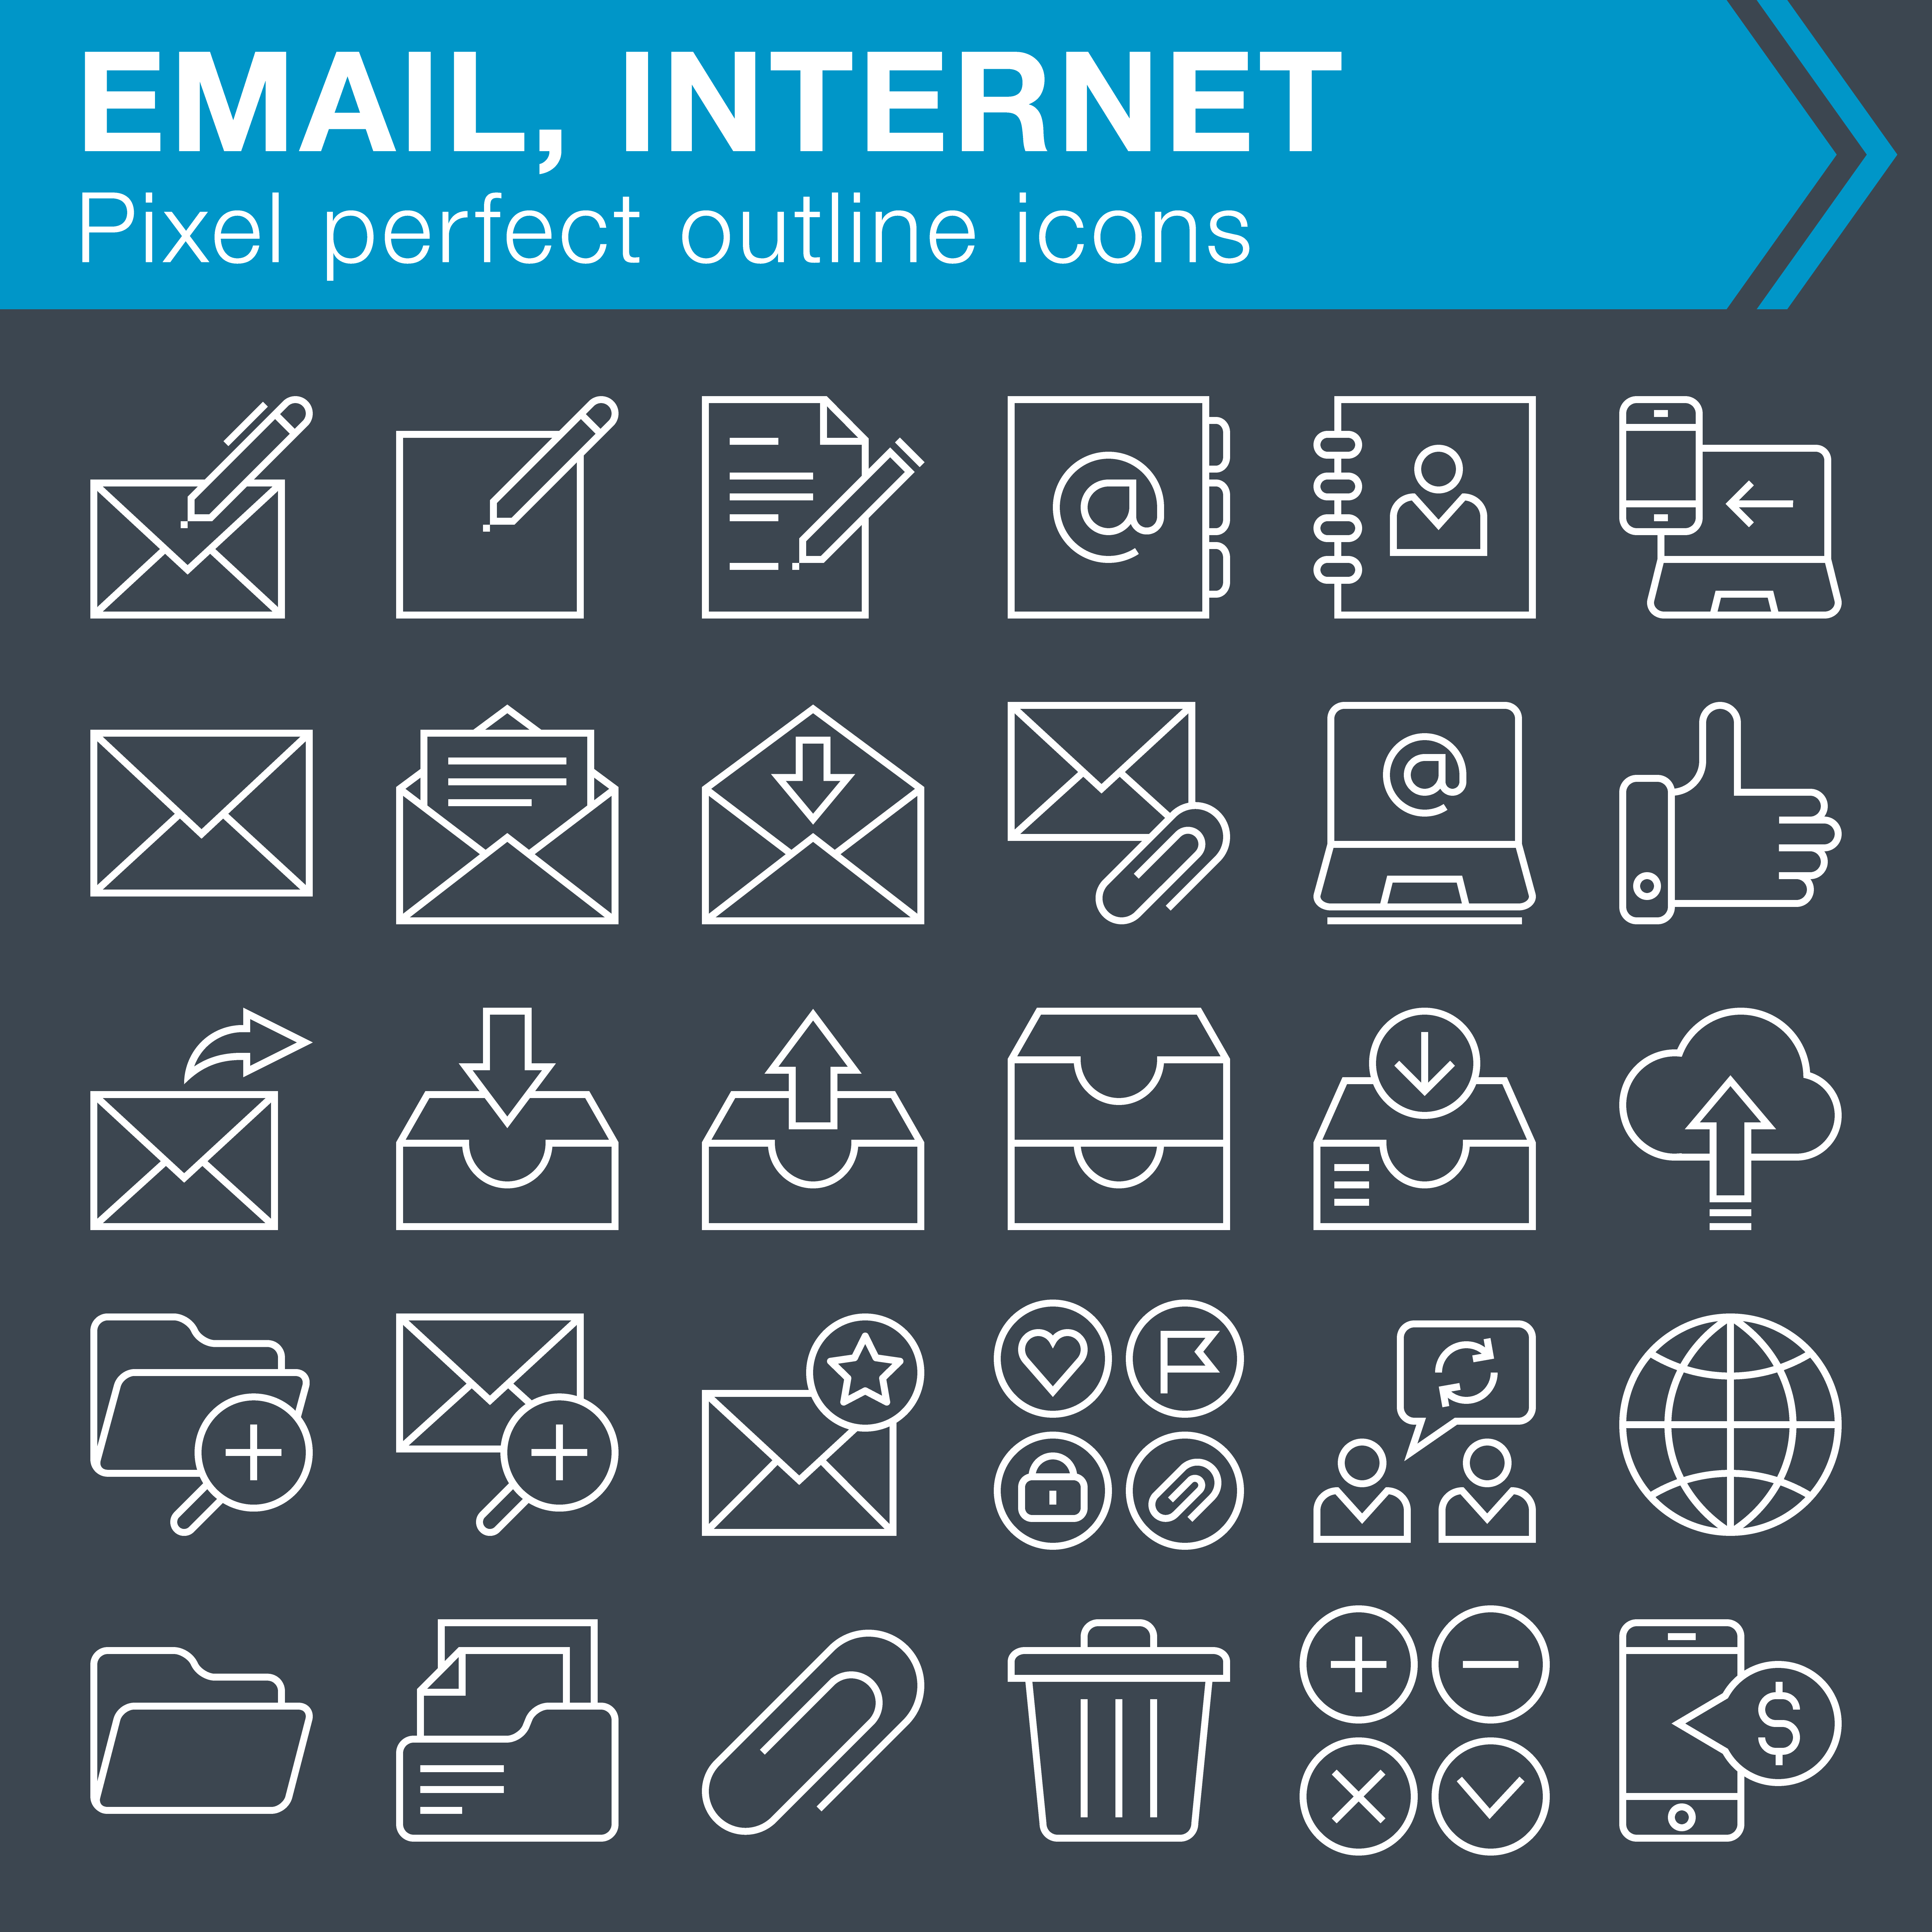 Email with internet outline icons set